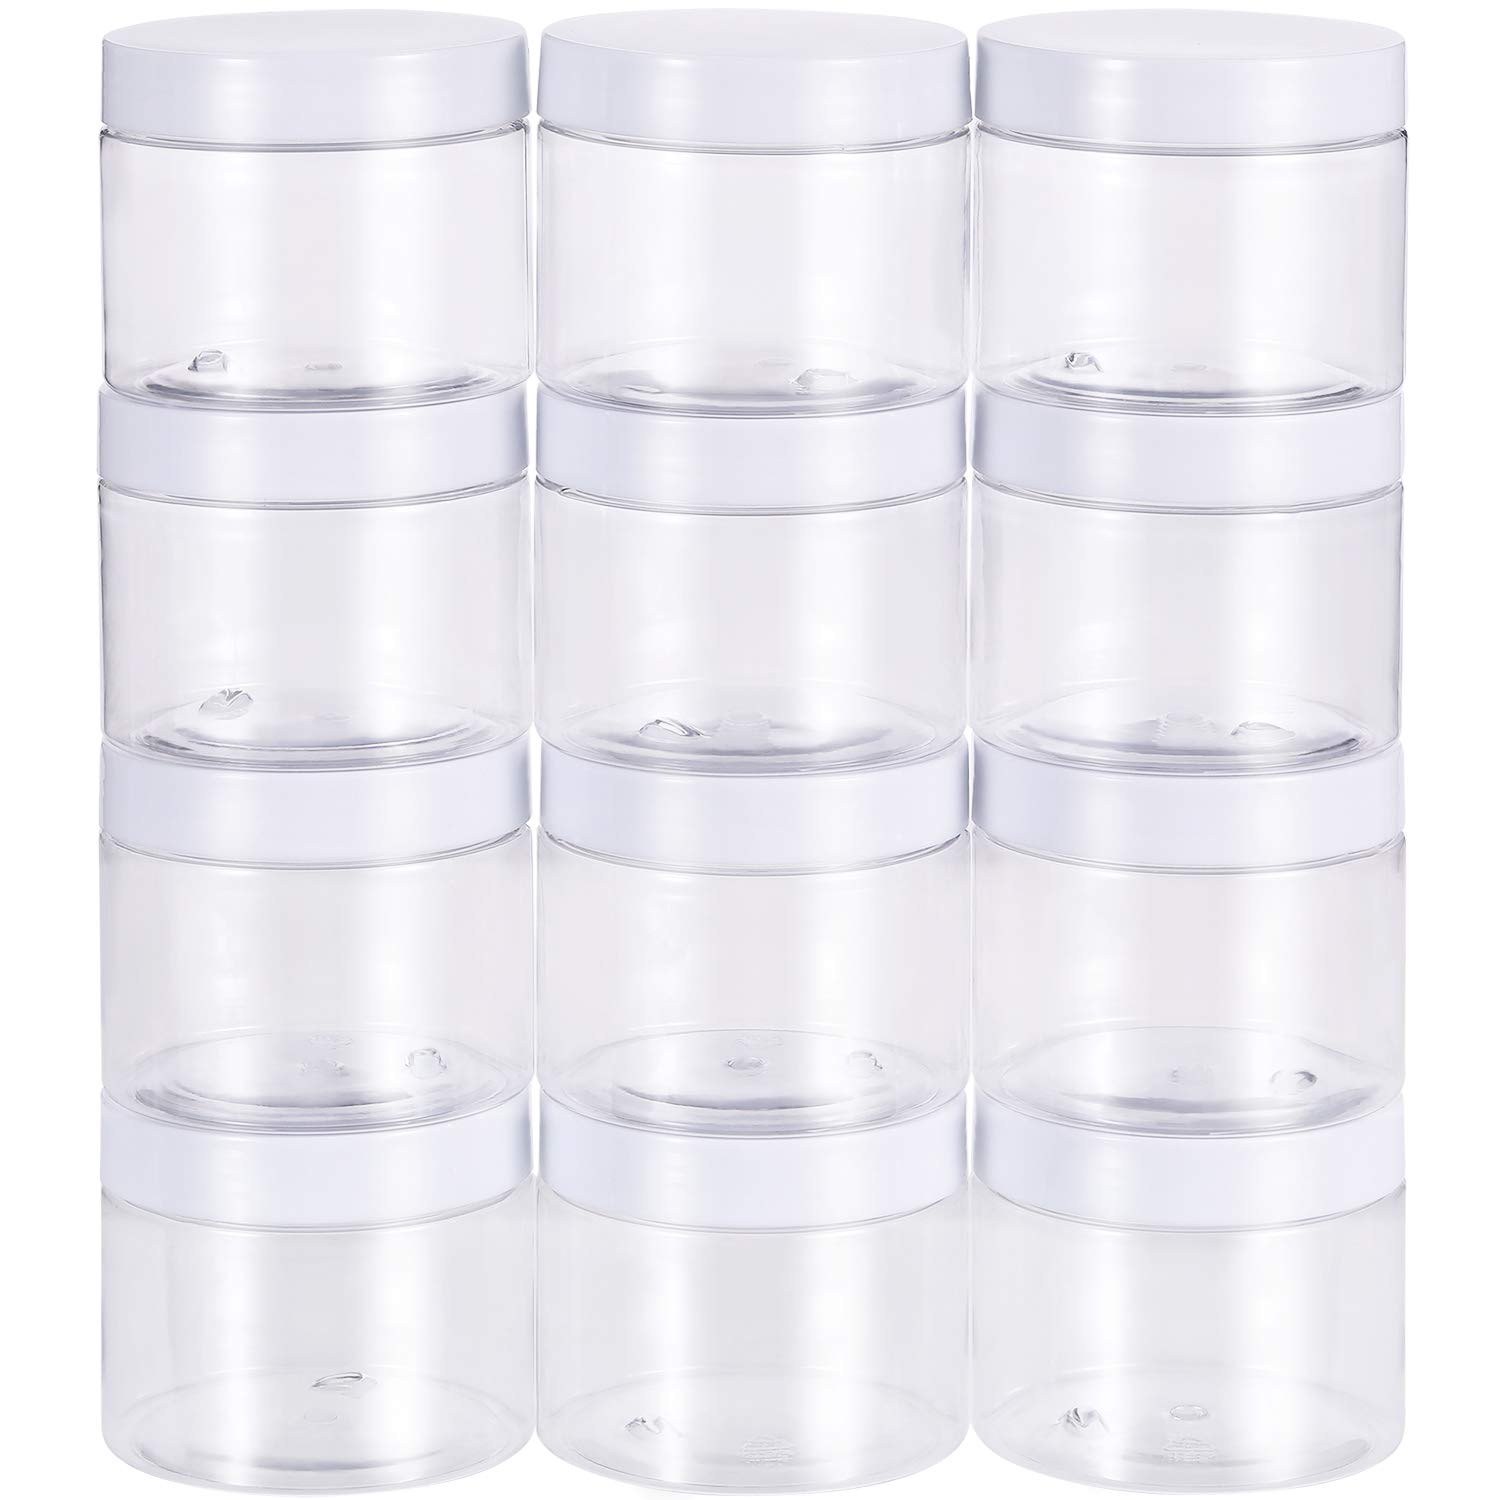 e229b8ac588b Empty 12 Pack Clear Plastic Slime Storage Favor Jars Wide-mouth ...